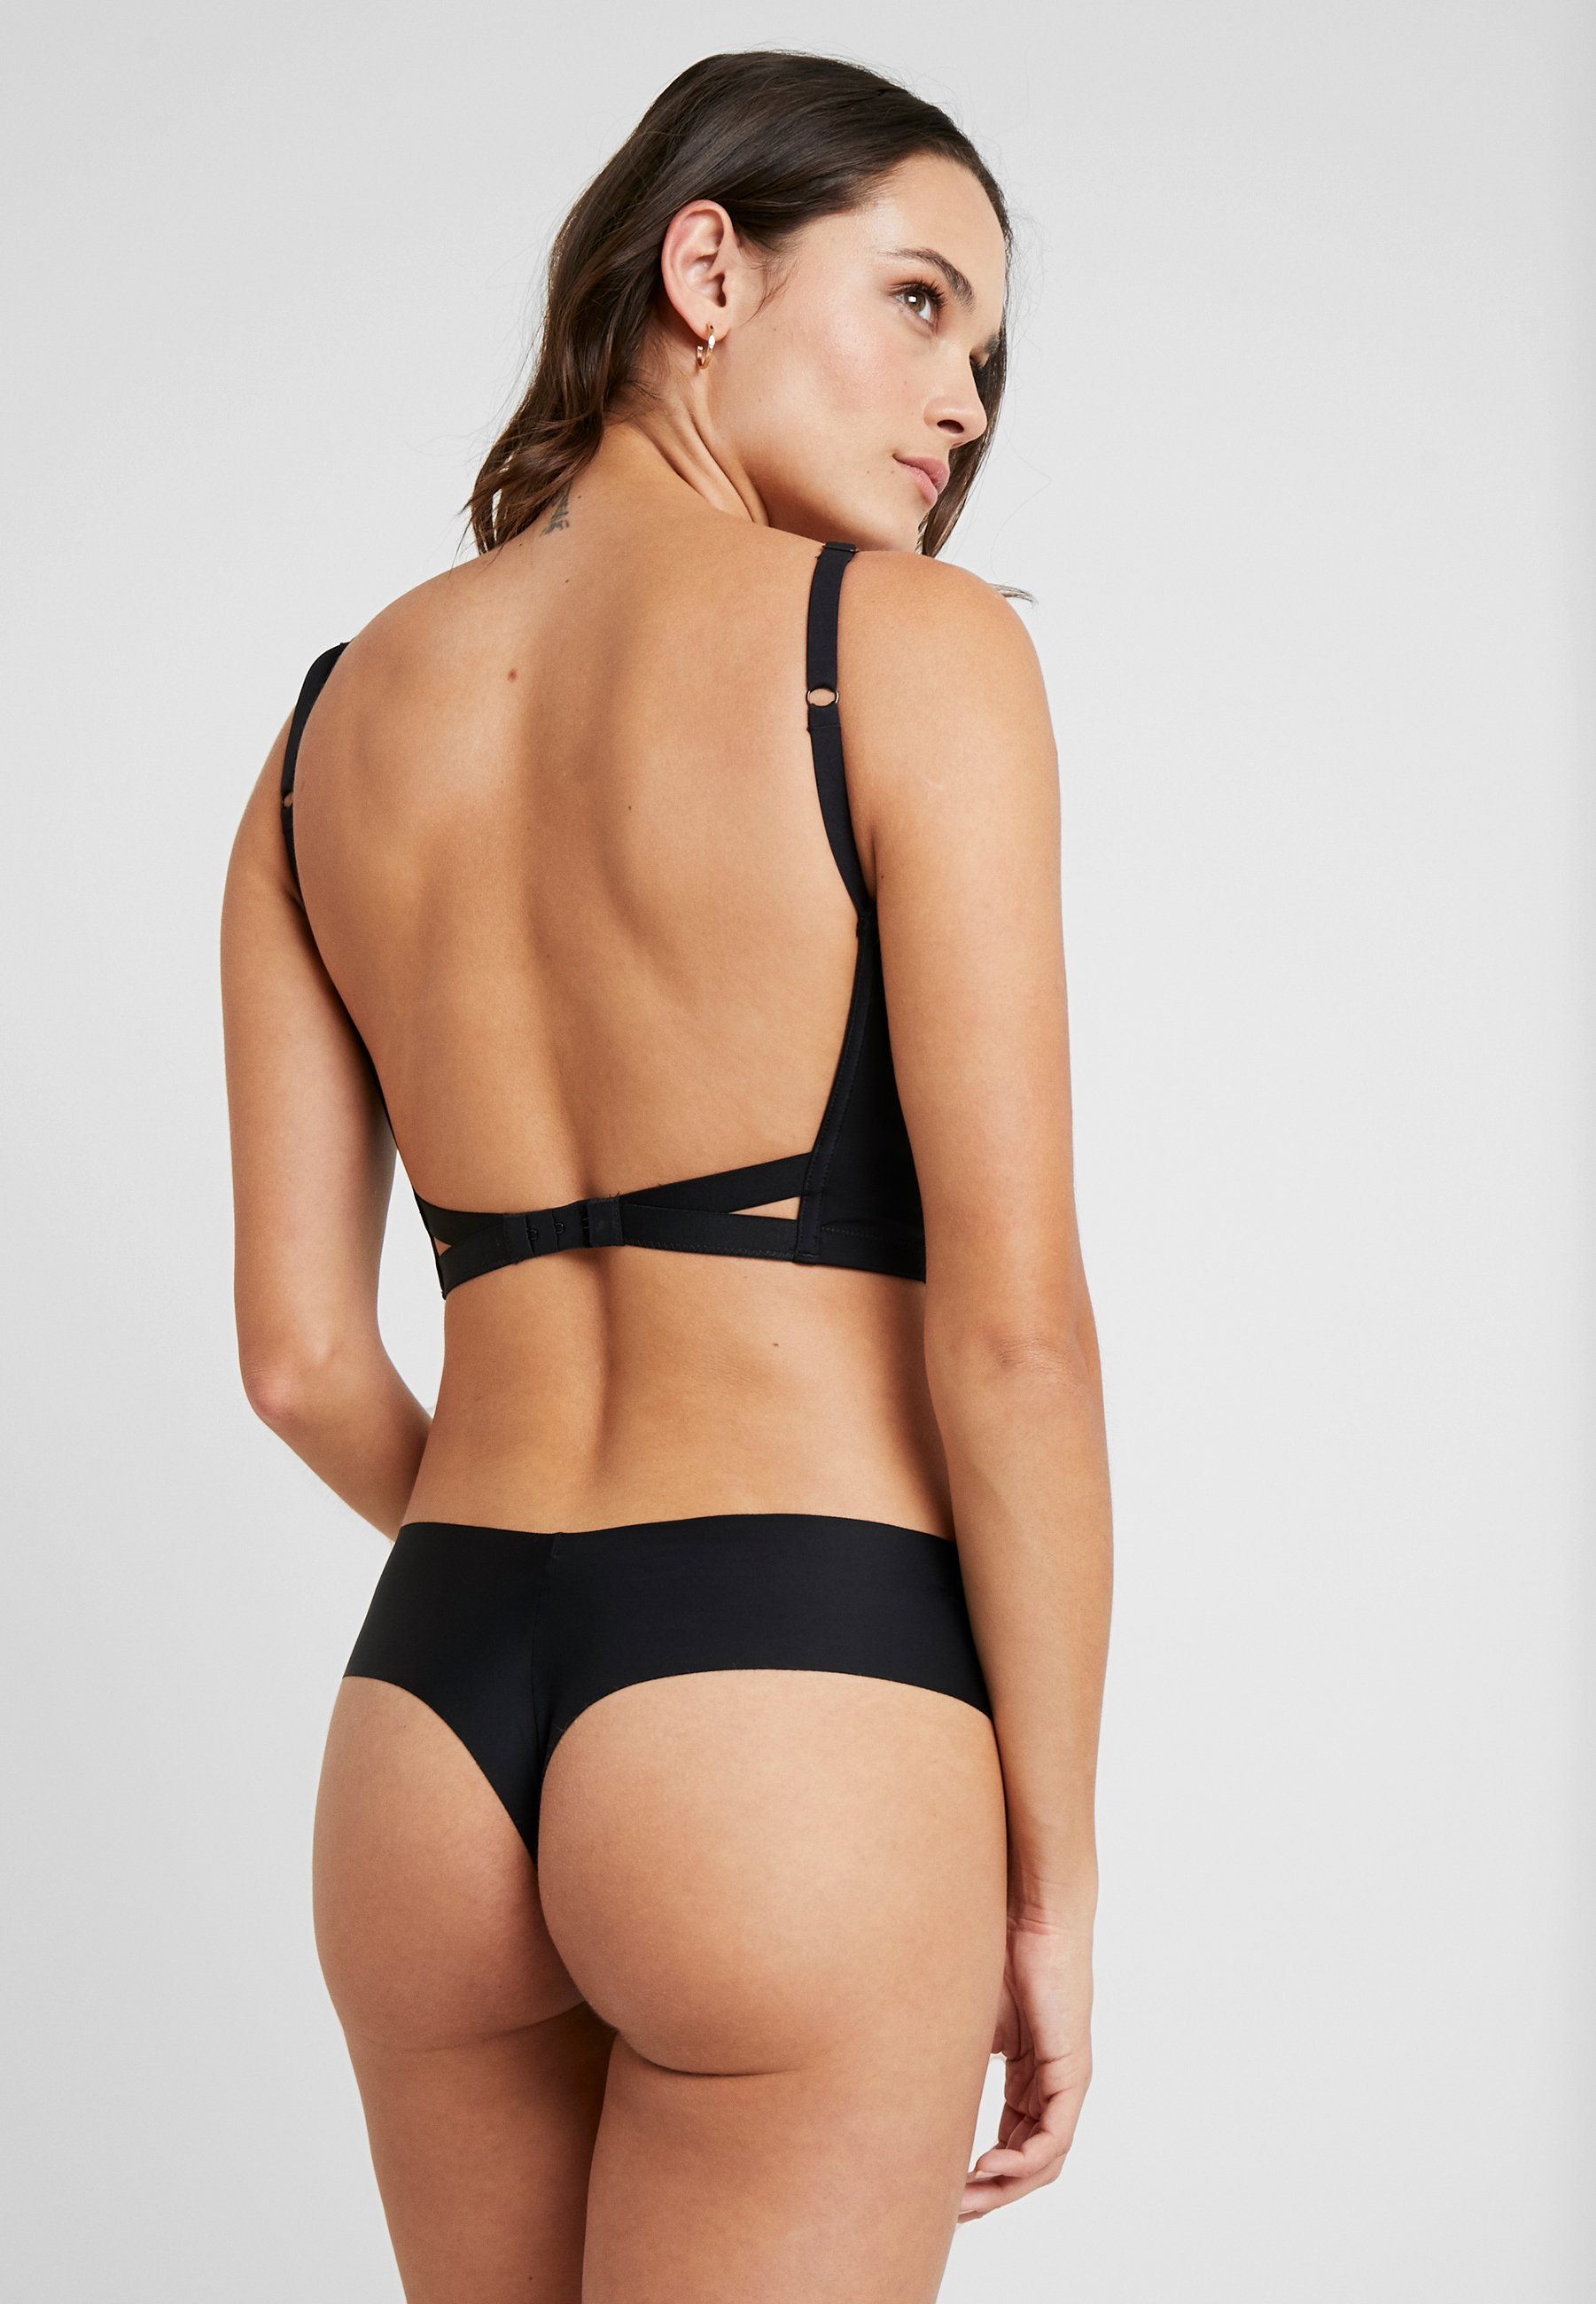 Femme ULTIMATE BACKLESS - Soutien-gorge invisible